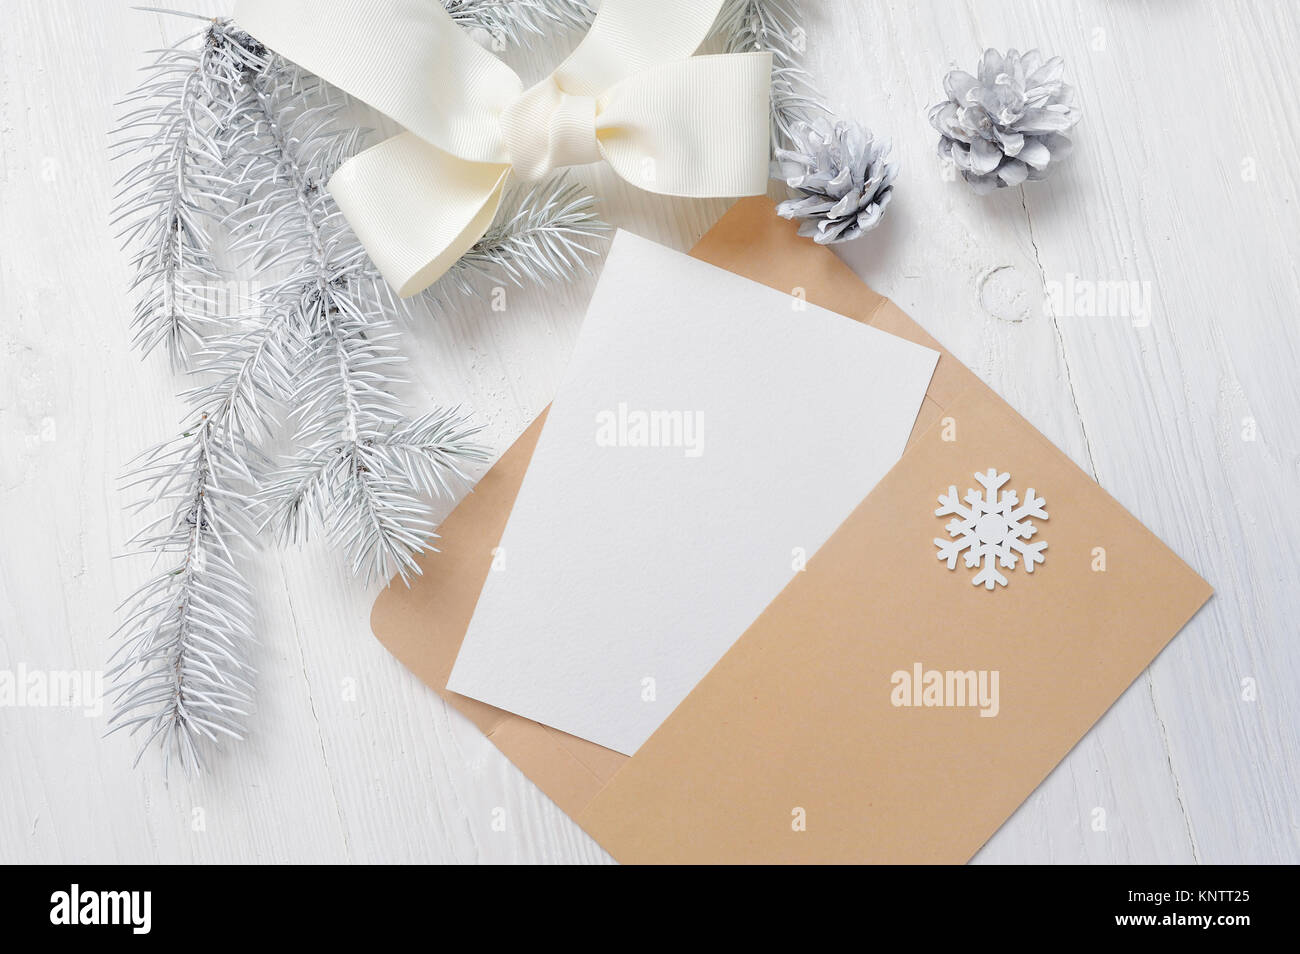 Mockup christmas greeting card letter in envelope with white tree mockup christmas greeting card letter in envelope with white tree and cone flatlay on a wooden background with place for your text m4hsunfo